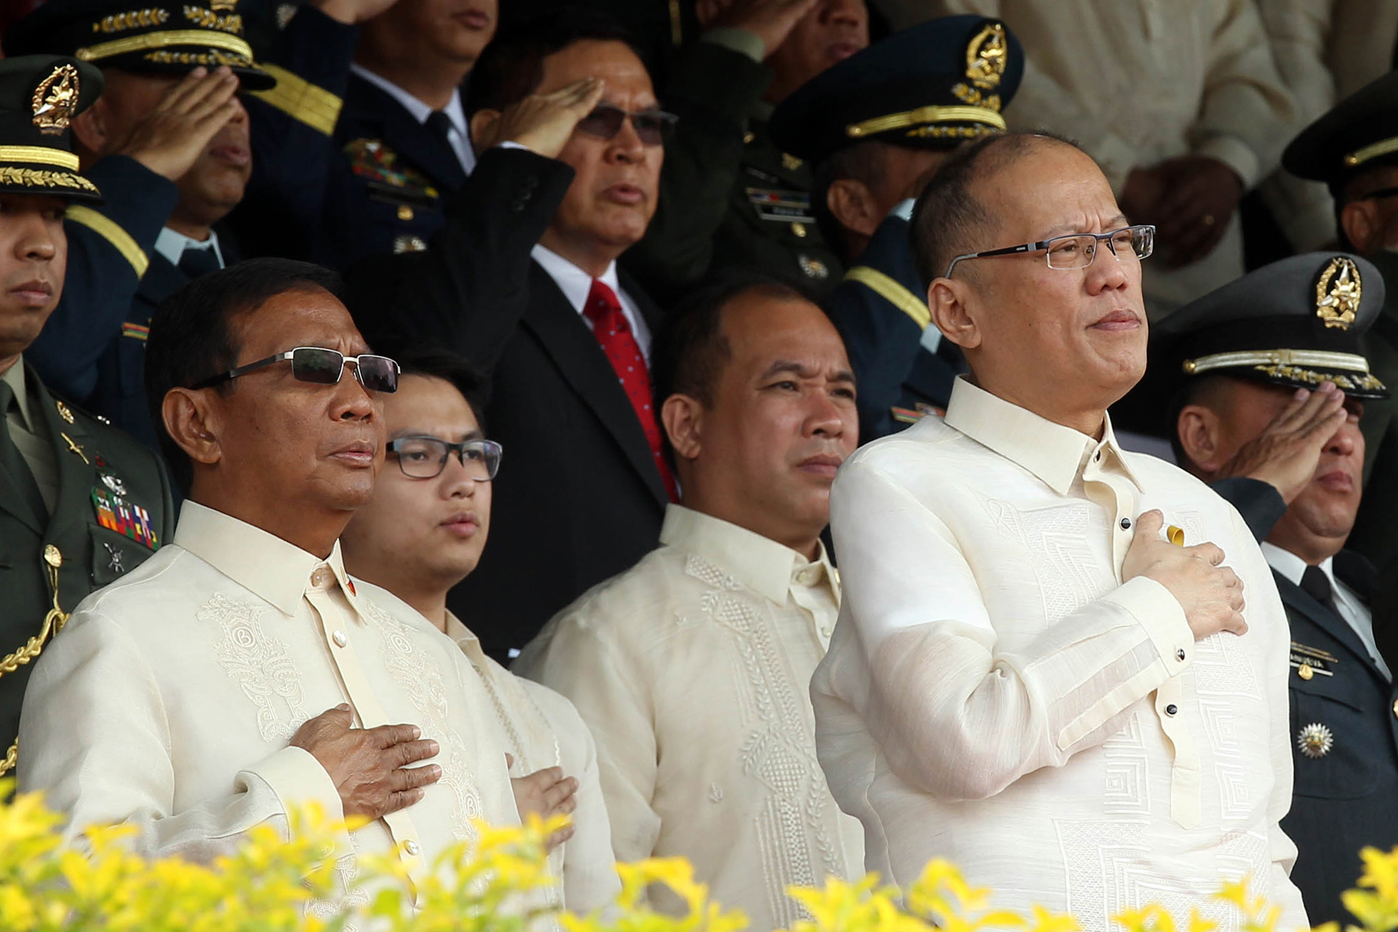 SAME STAGE. President Aquino and Vice President Binay during the graduation ceremony of the Philippine Military Academy in Baguio City on March 13. Photo from the Malacanang Photo Bureau